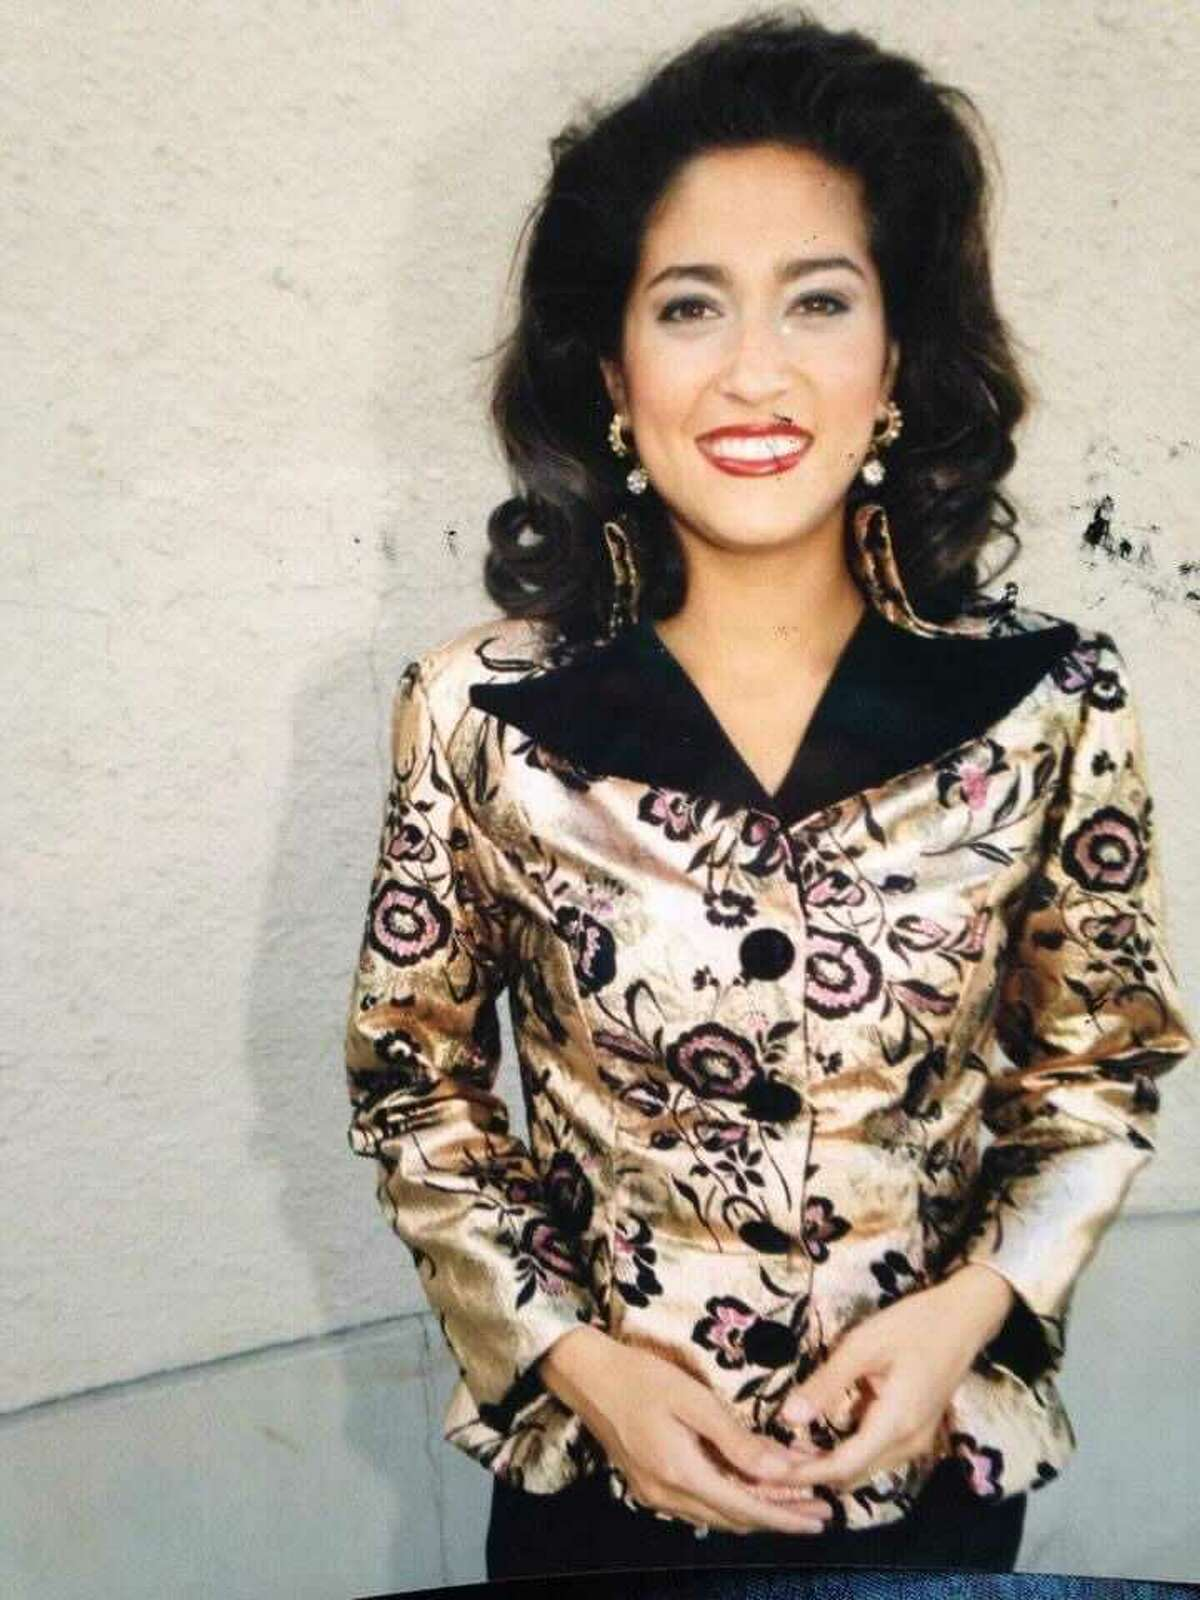 Former San Antonio anchor Sarah Lucero wearing a custom outfit created by Selena in 1994.